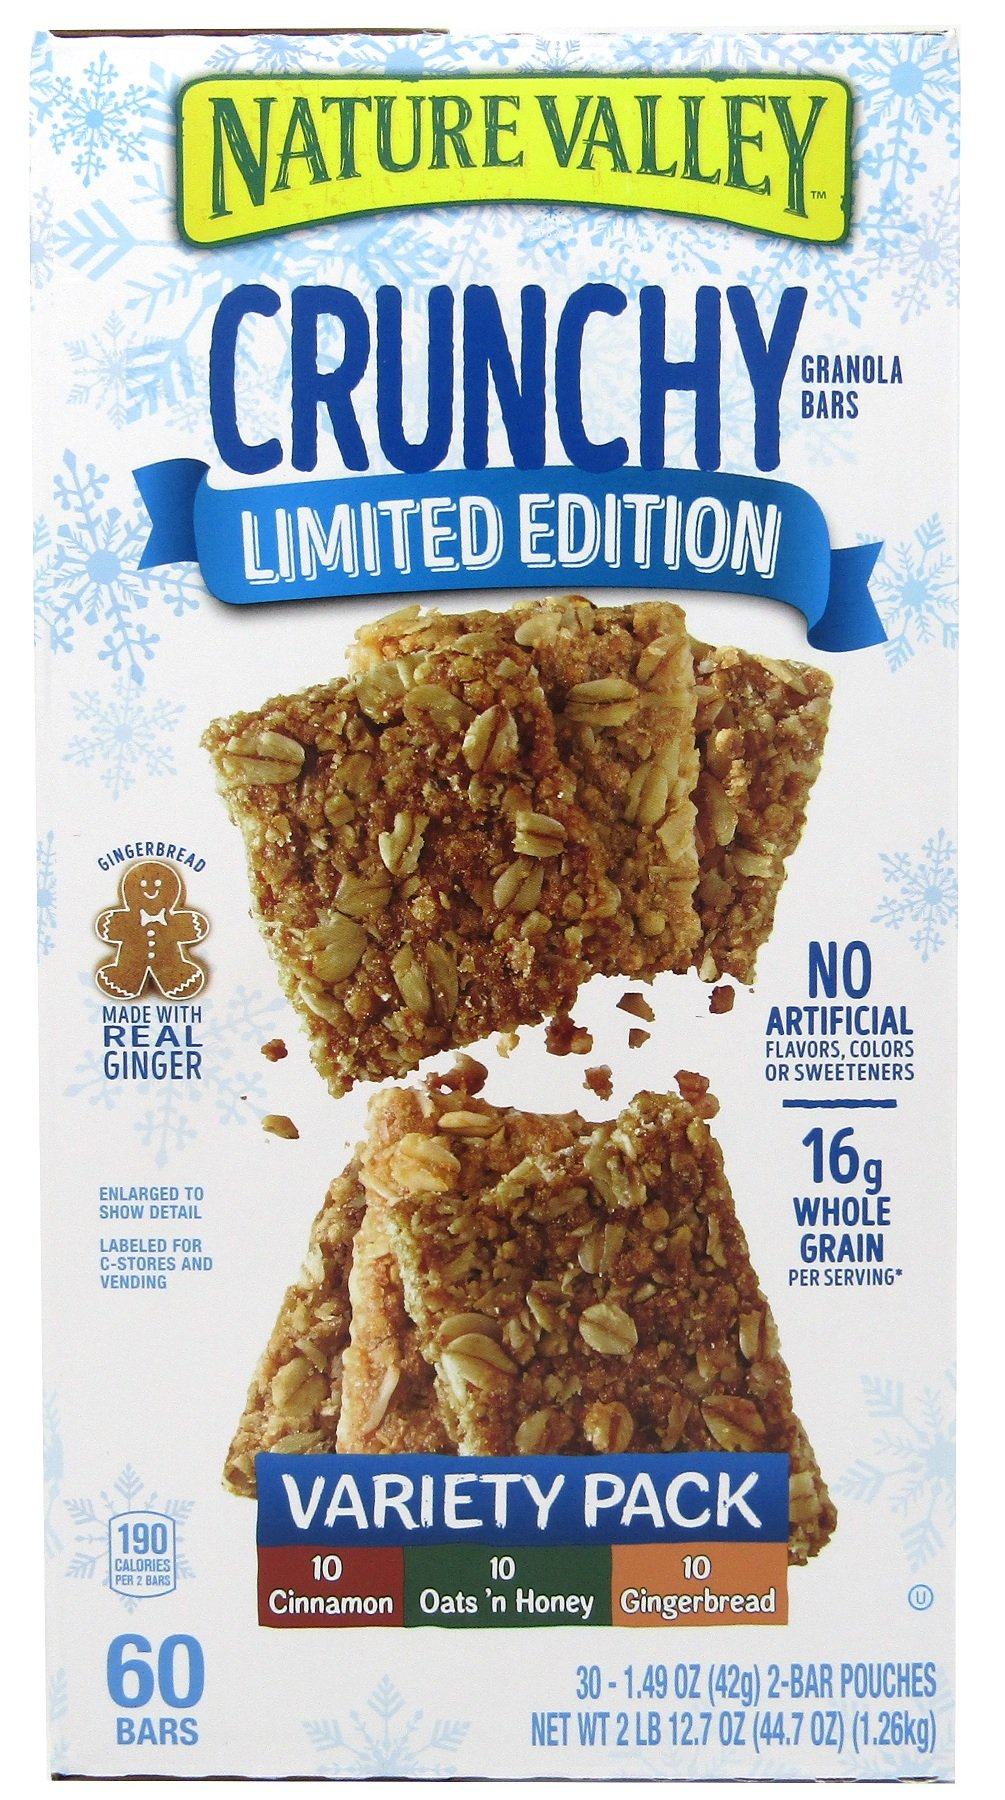 Nature Valley Limited Edition Granola Bars, Crunchy, Cinnamon, Oats n Honey, Gingerbread, Variety Pack, 30 Count